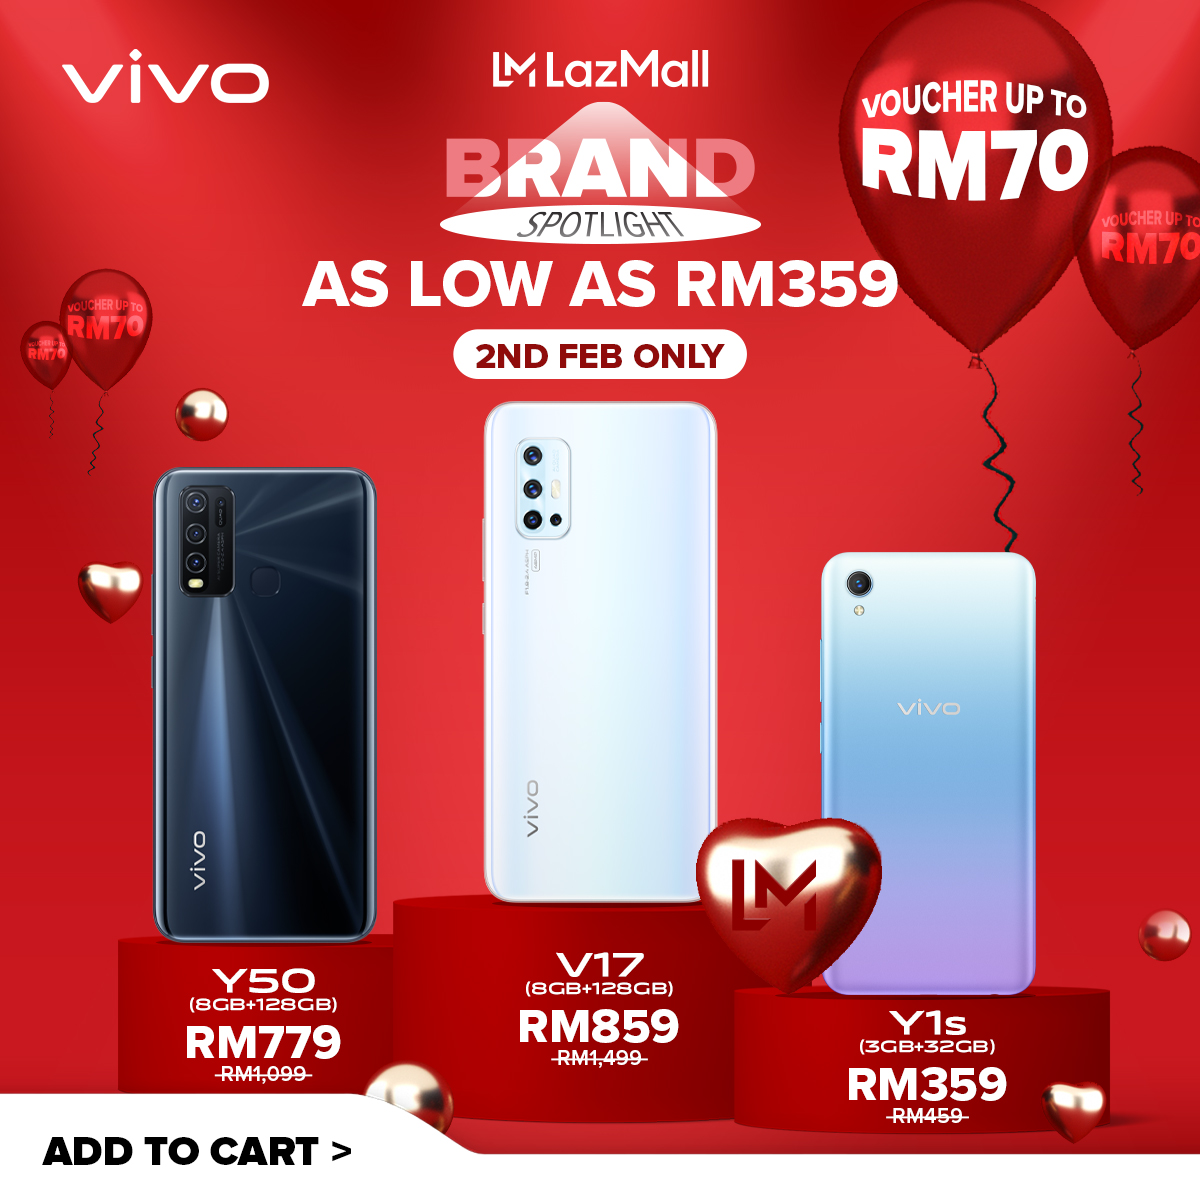 vivo x LazMall Brand Spotlight Offering Exciting 1-Day Sale on 2 February